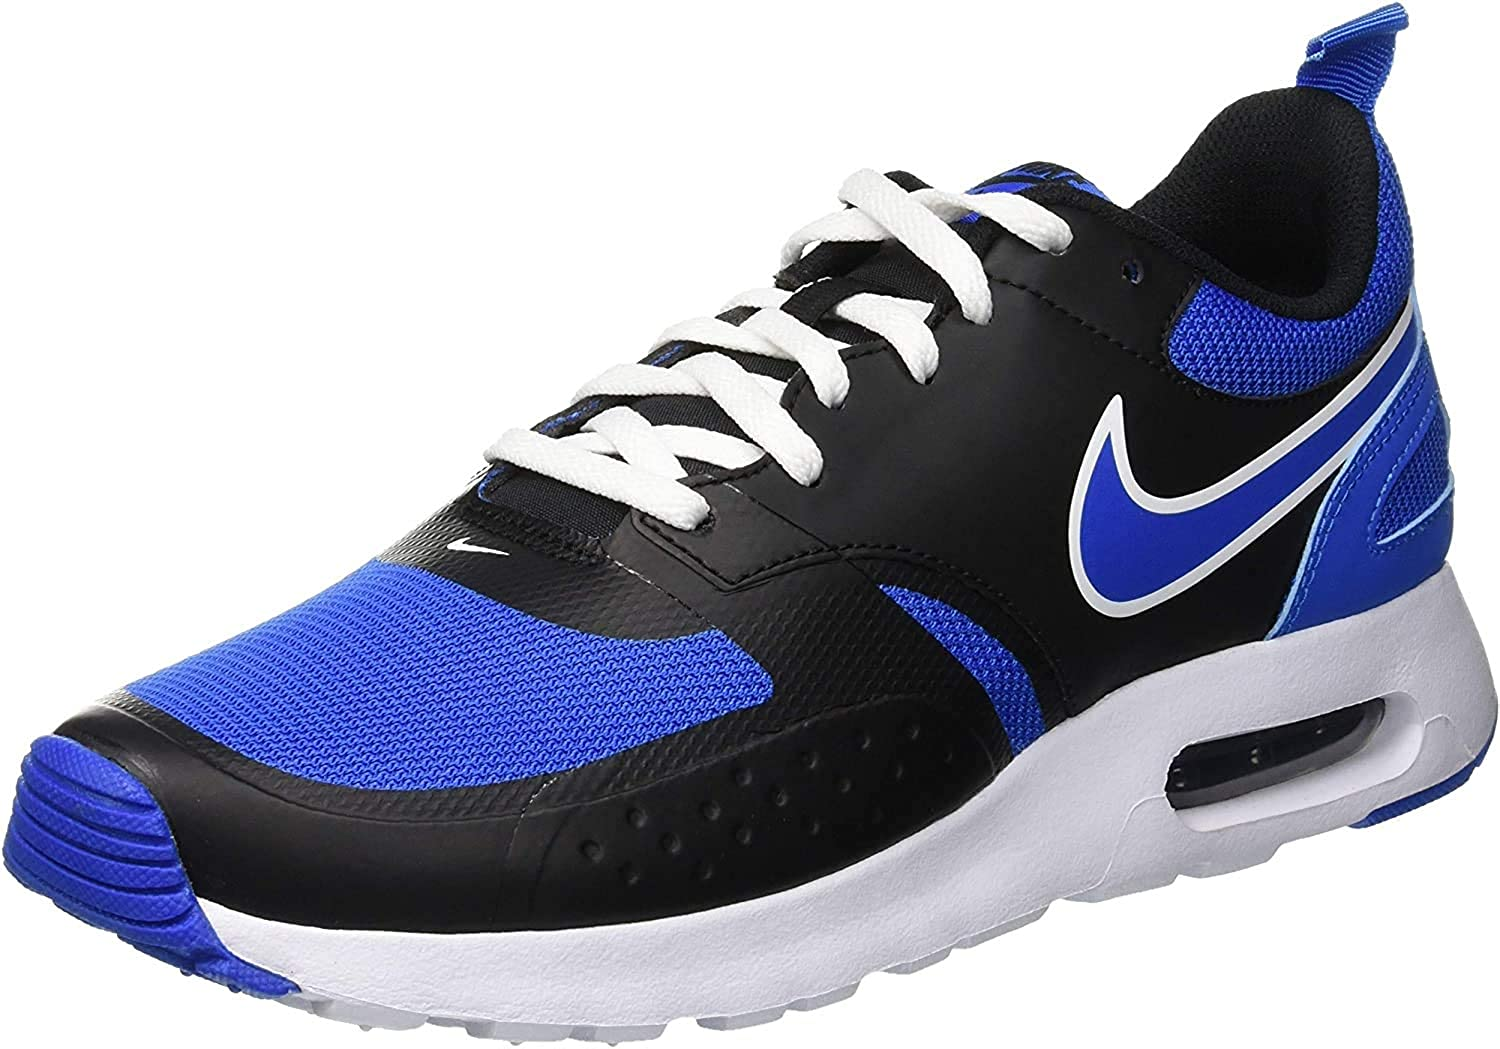 Nike Air Max Vision, Chaussures de Running Compétition Homme Multicolore Black Signal Blue White 012